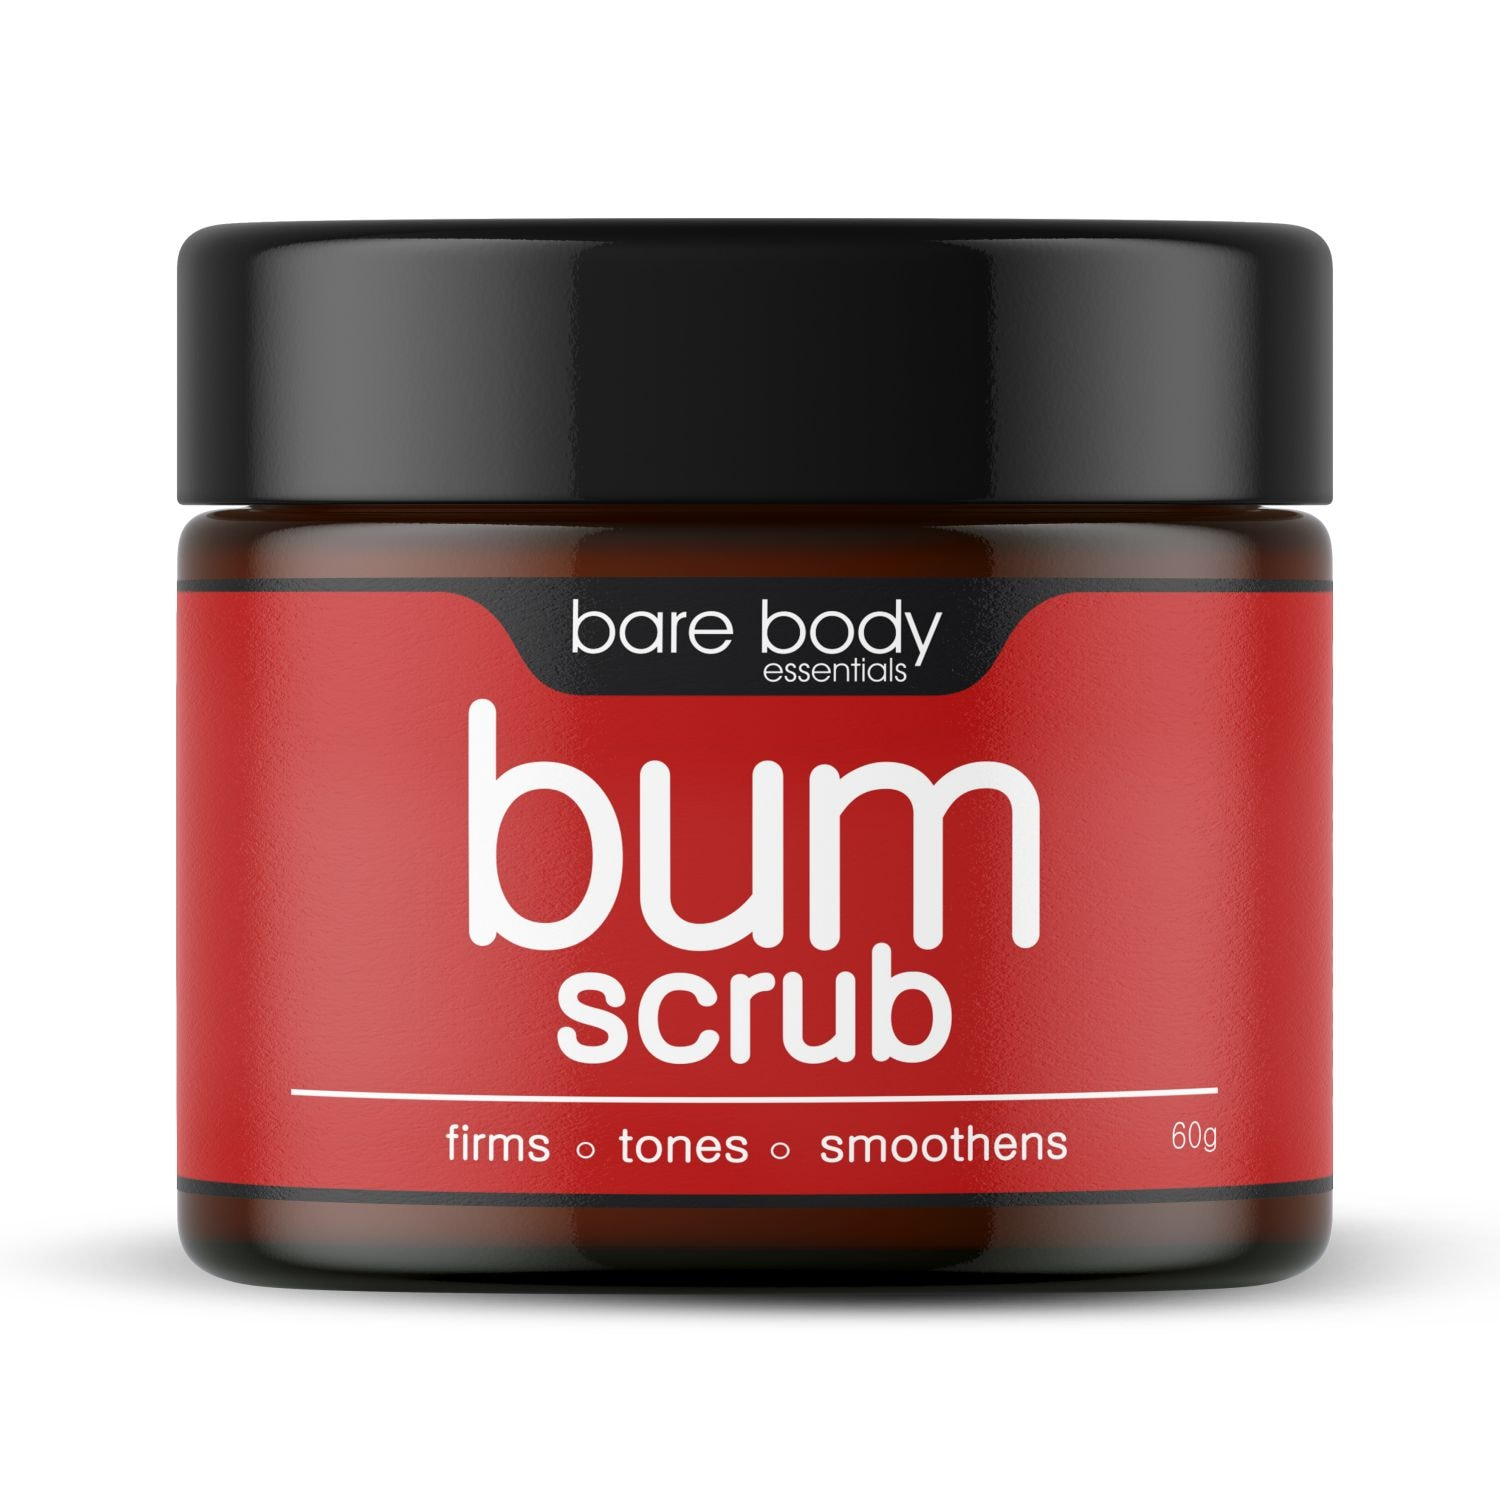 This scrub makes your bum look and feel good